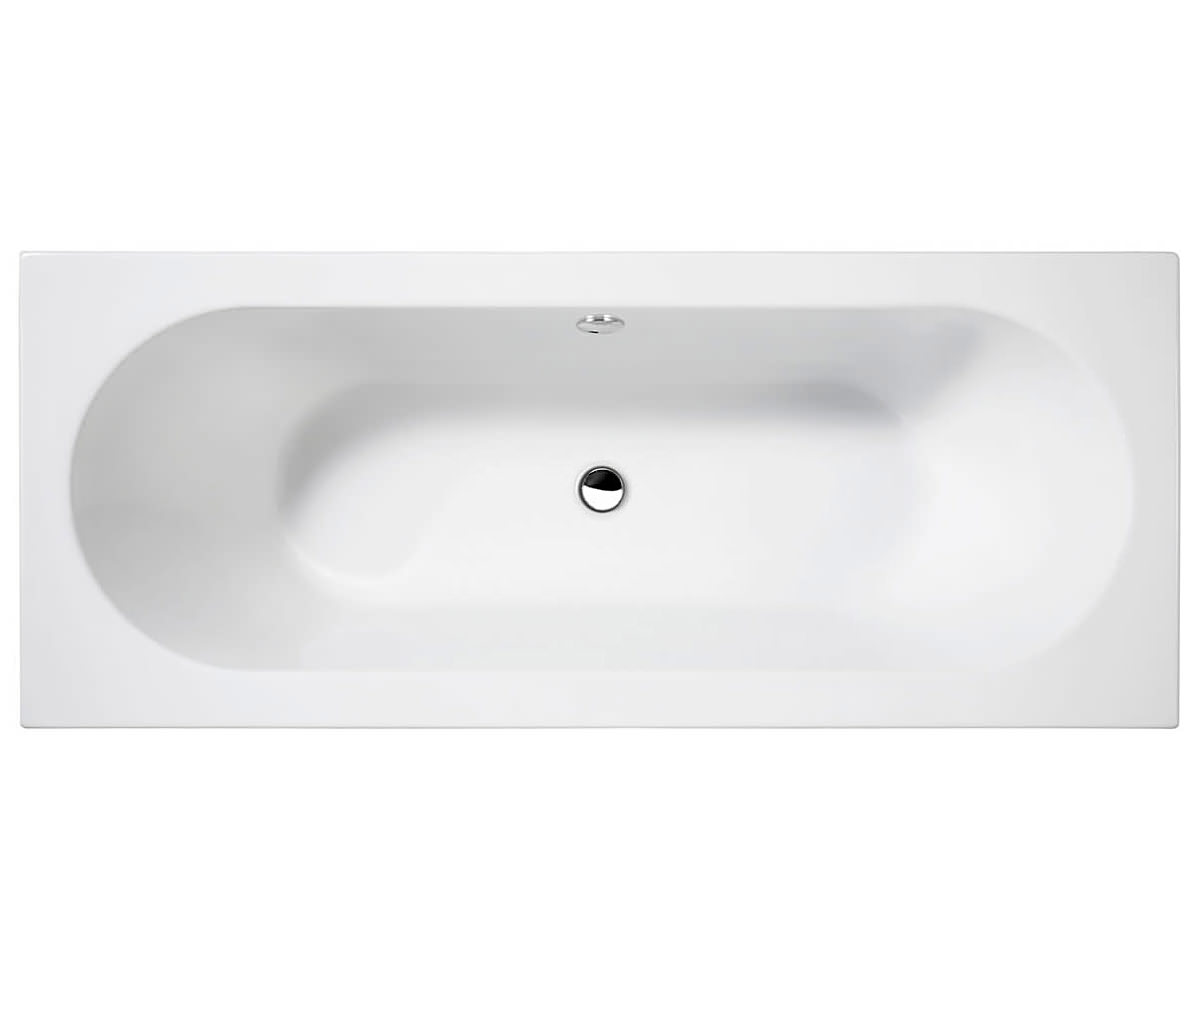 Cheap Double Ended Baths Uk. earl 1750 double ended roll top slipper ...